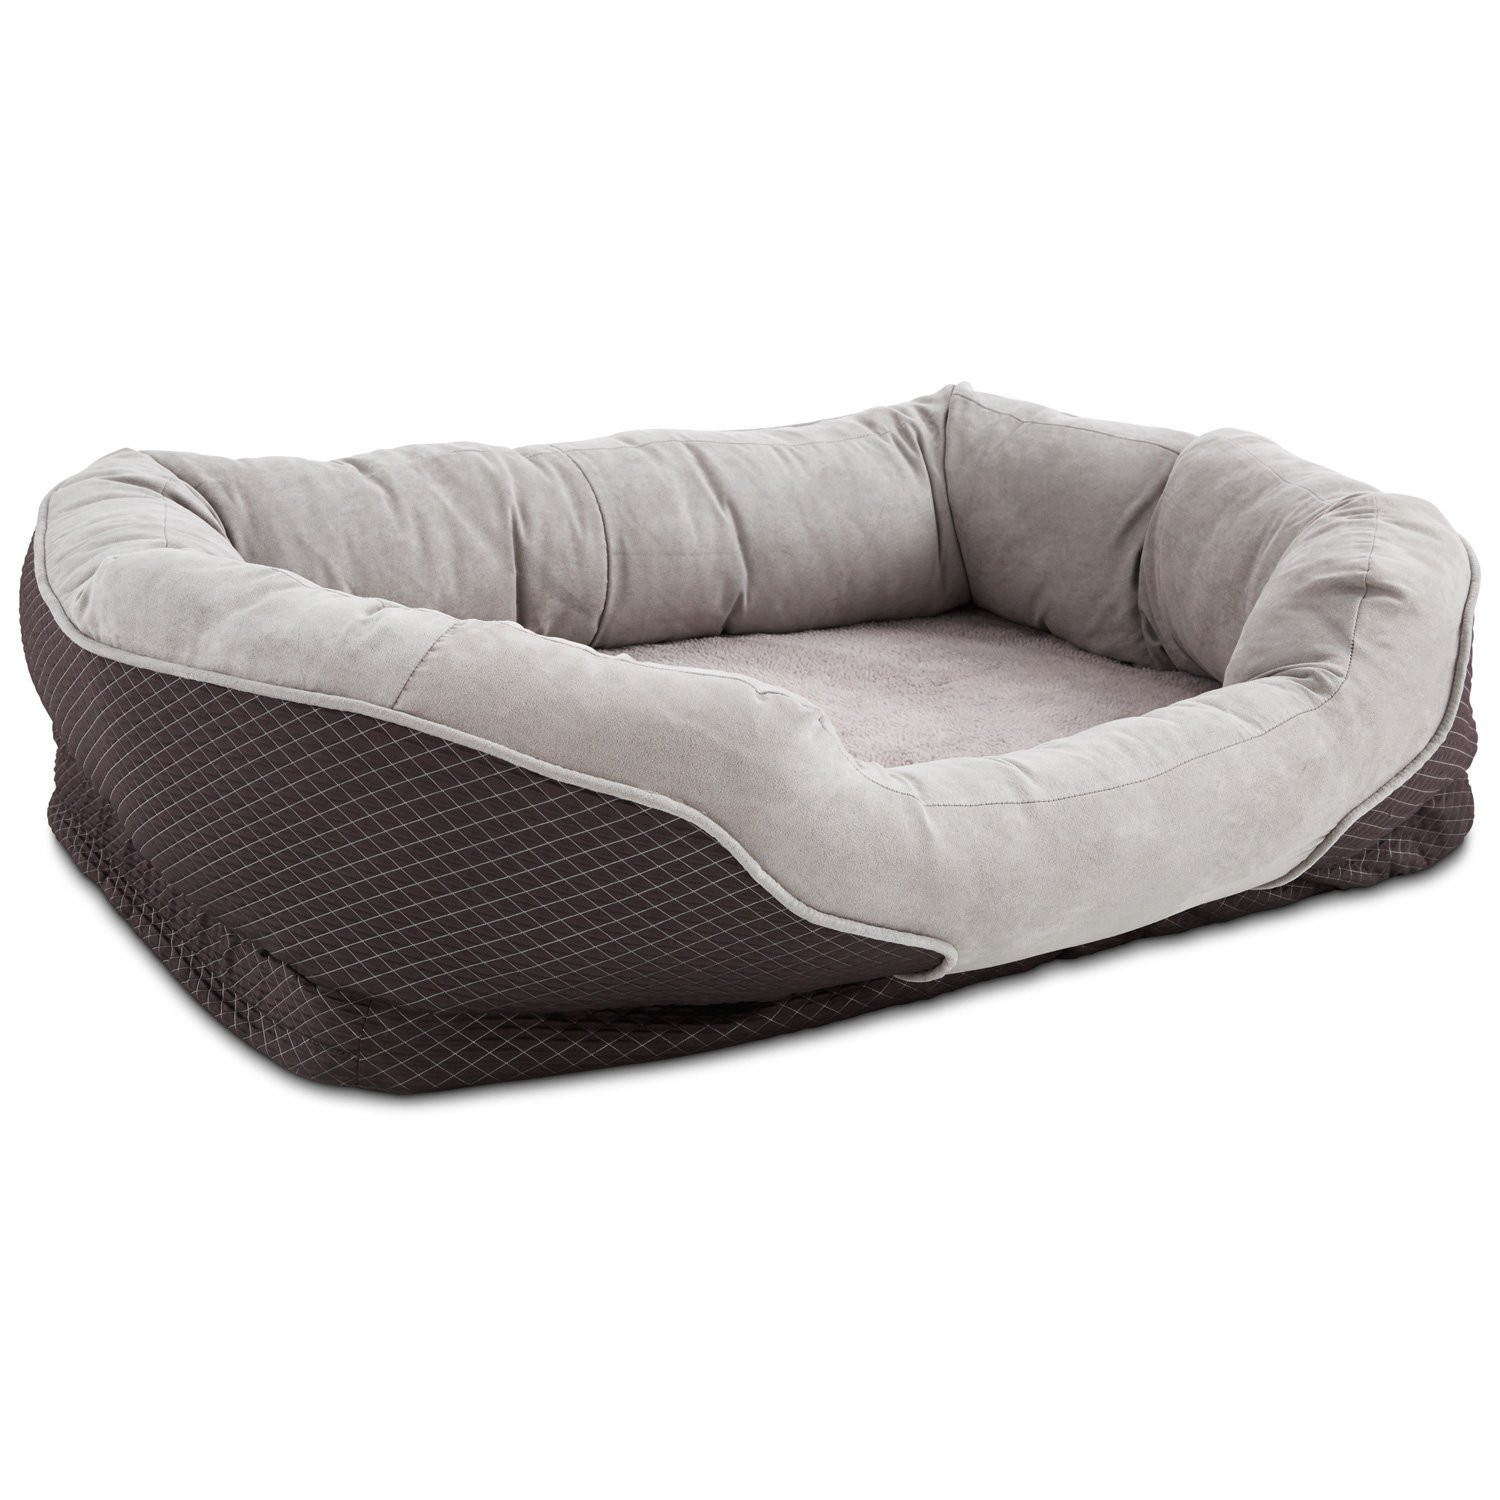 orthopedic peaceful nester gray dog bed petco. Black Bedroom Furniture Sets. Home Design Ideas